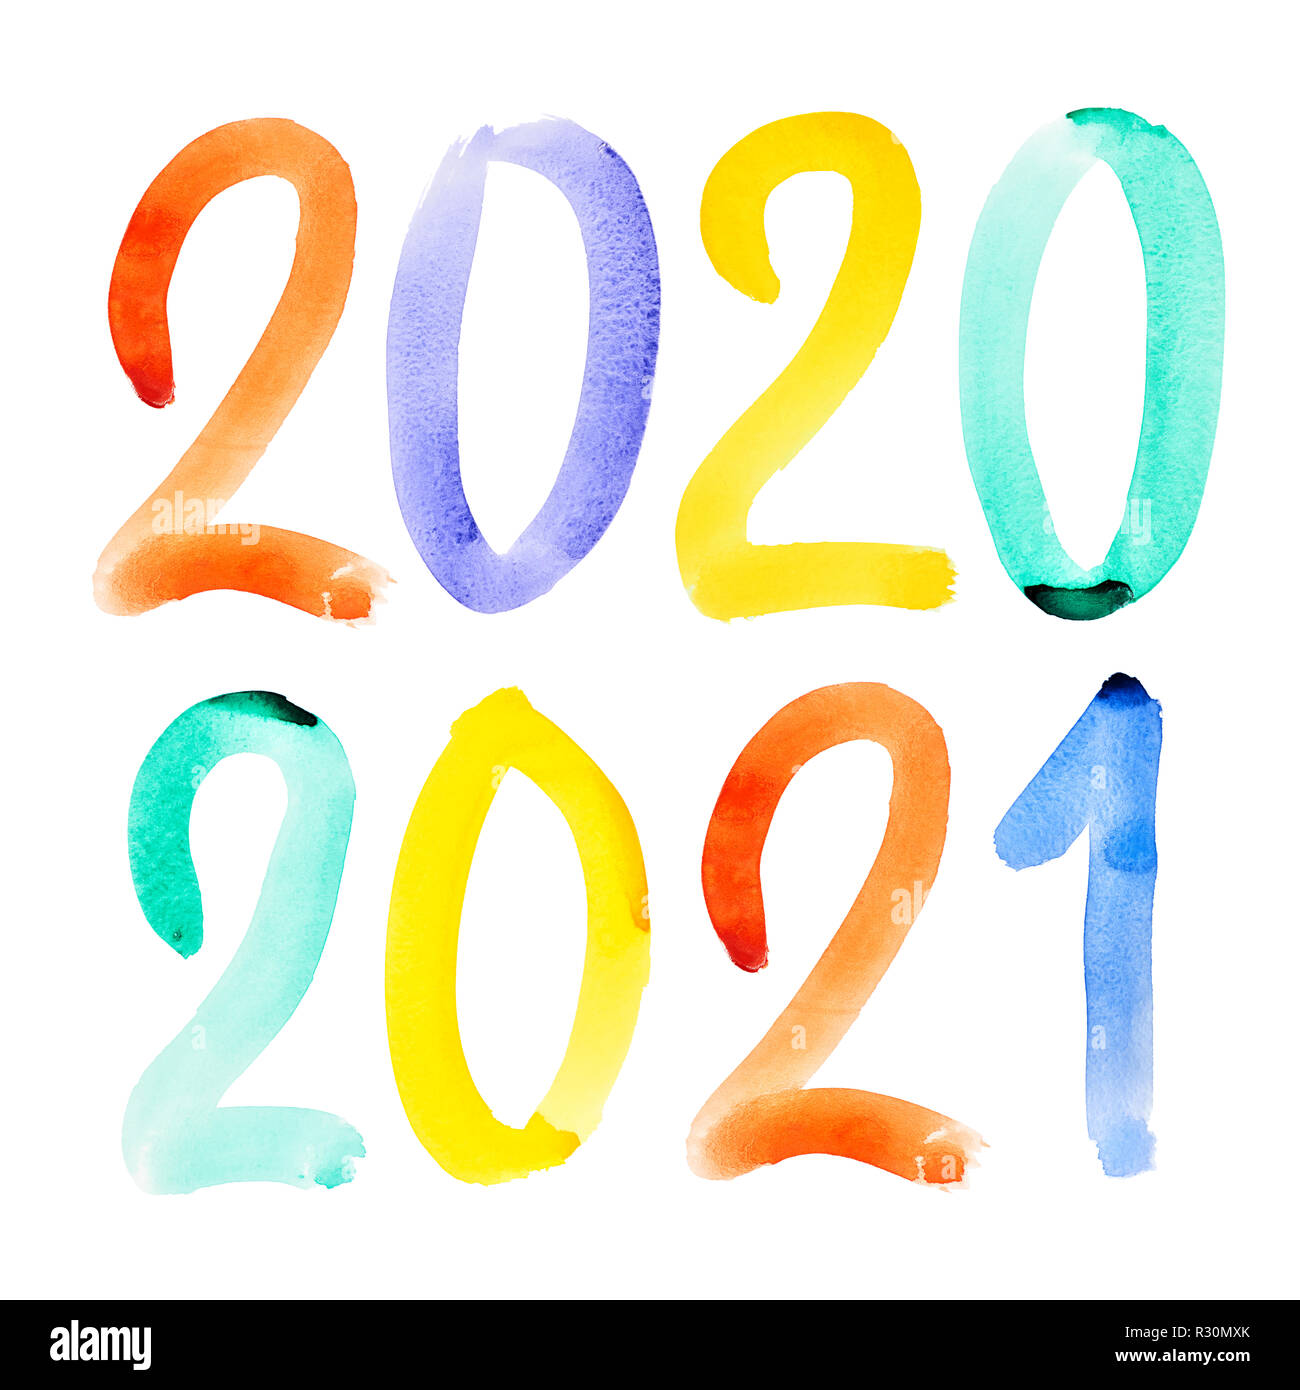 Happy New Year 2020, 2021 - Colorful hand drawn watercolor ...